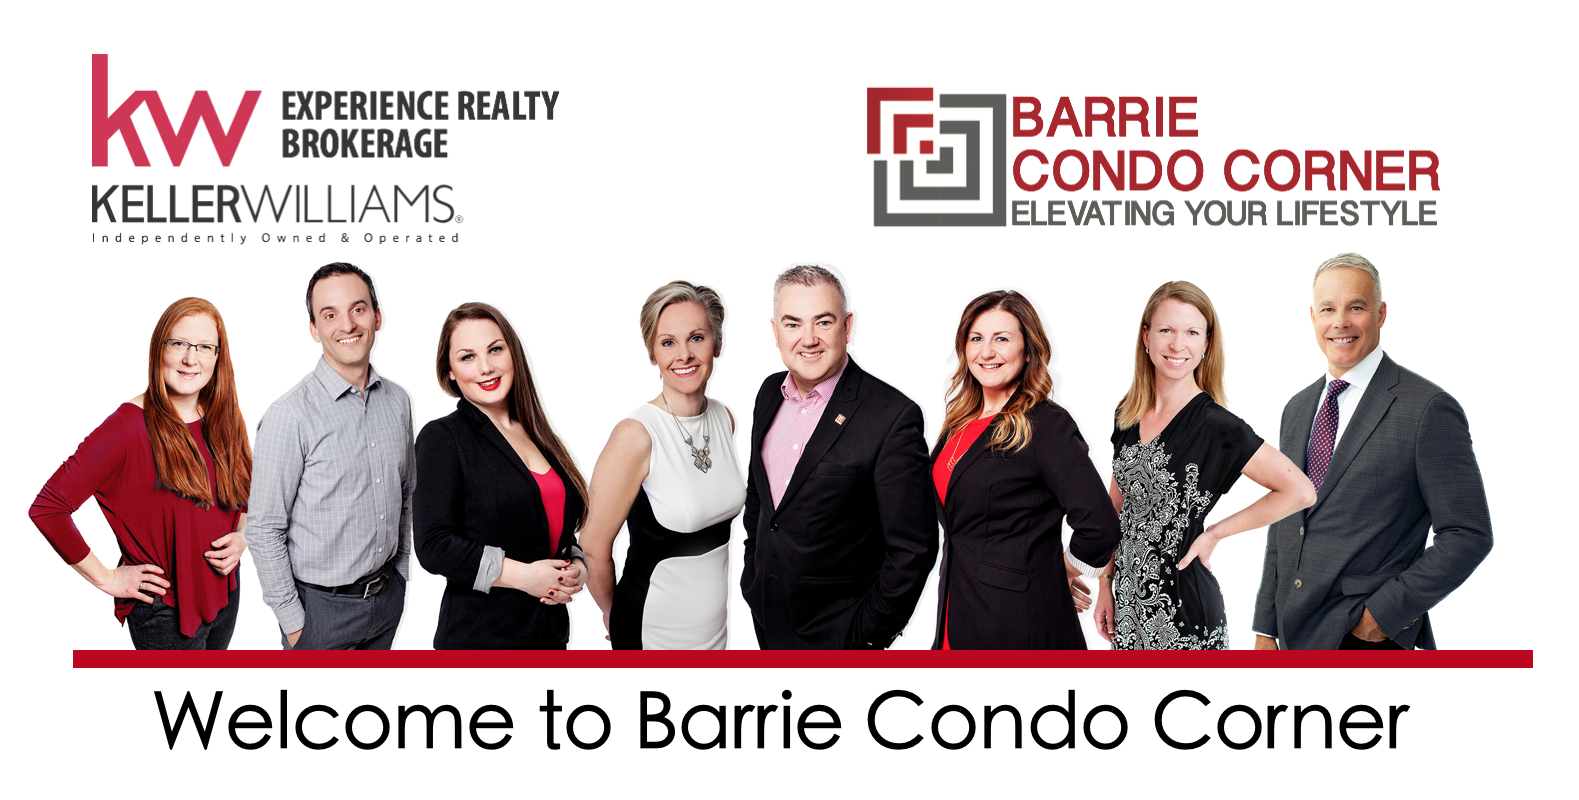 Searching for listings in Barrie